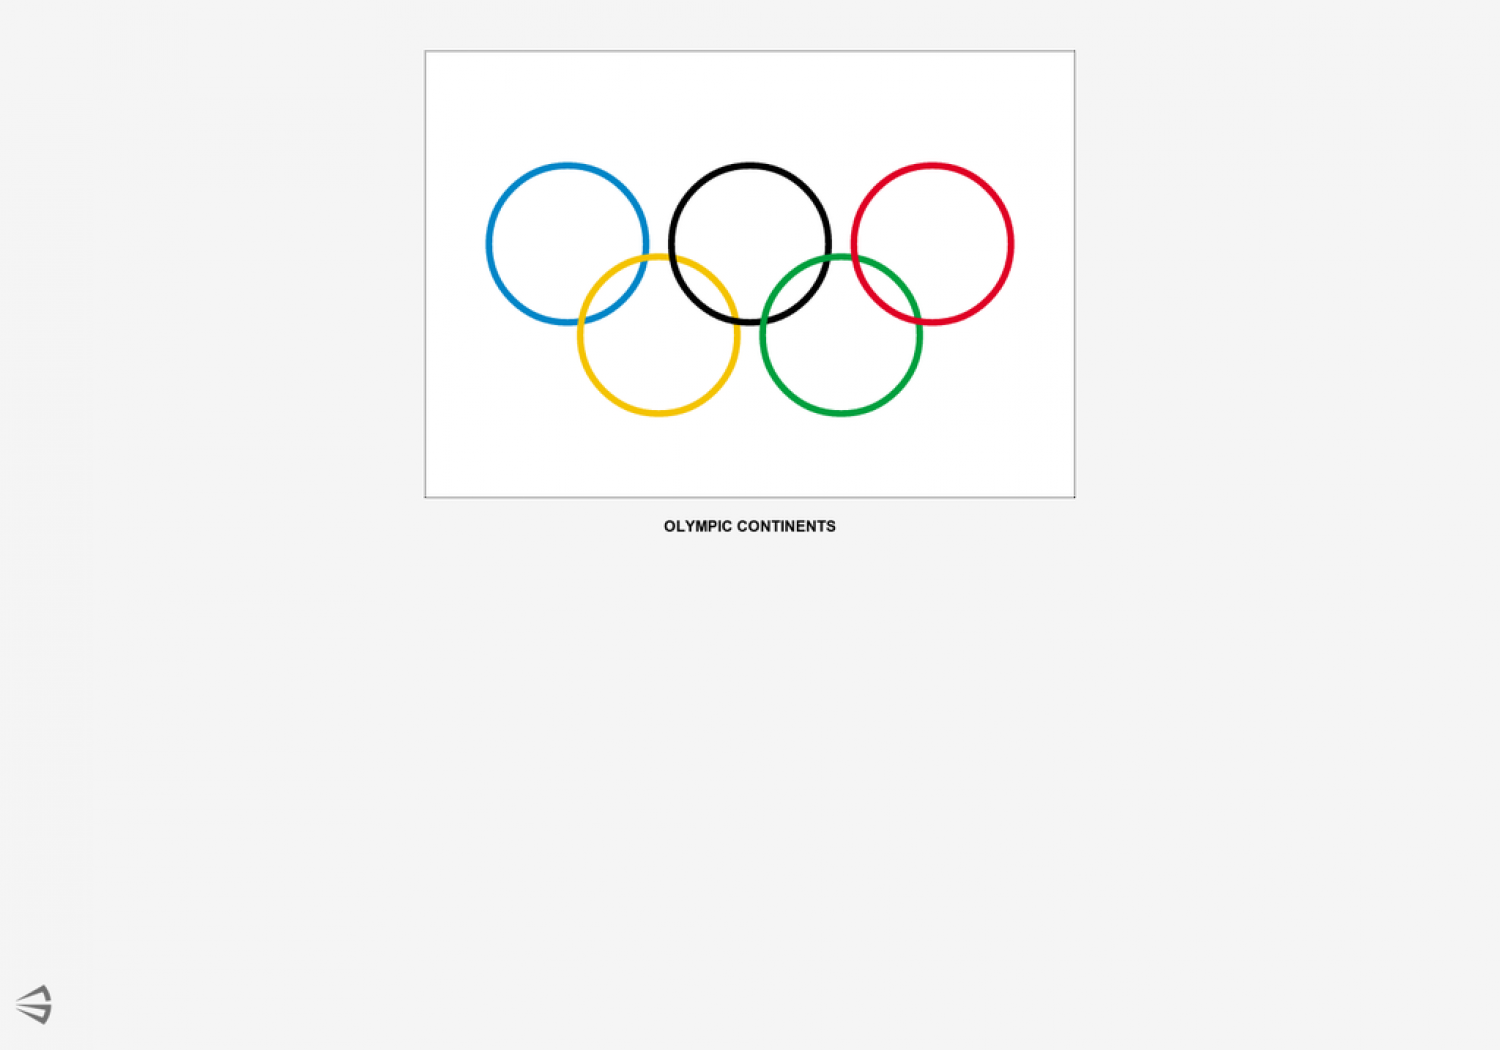 Olympic Continents Infographic